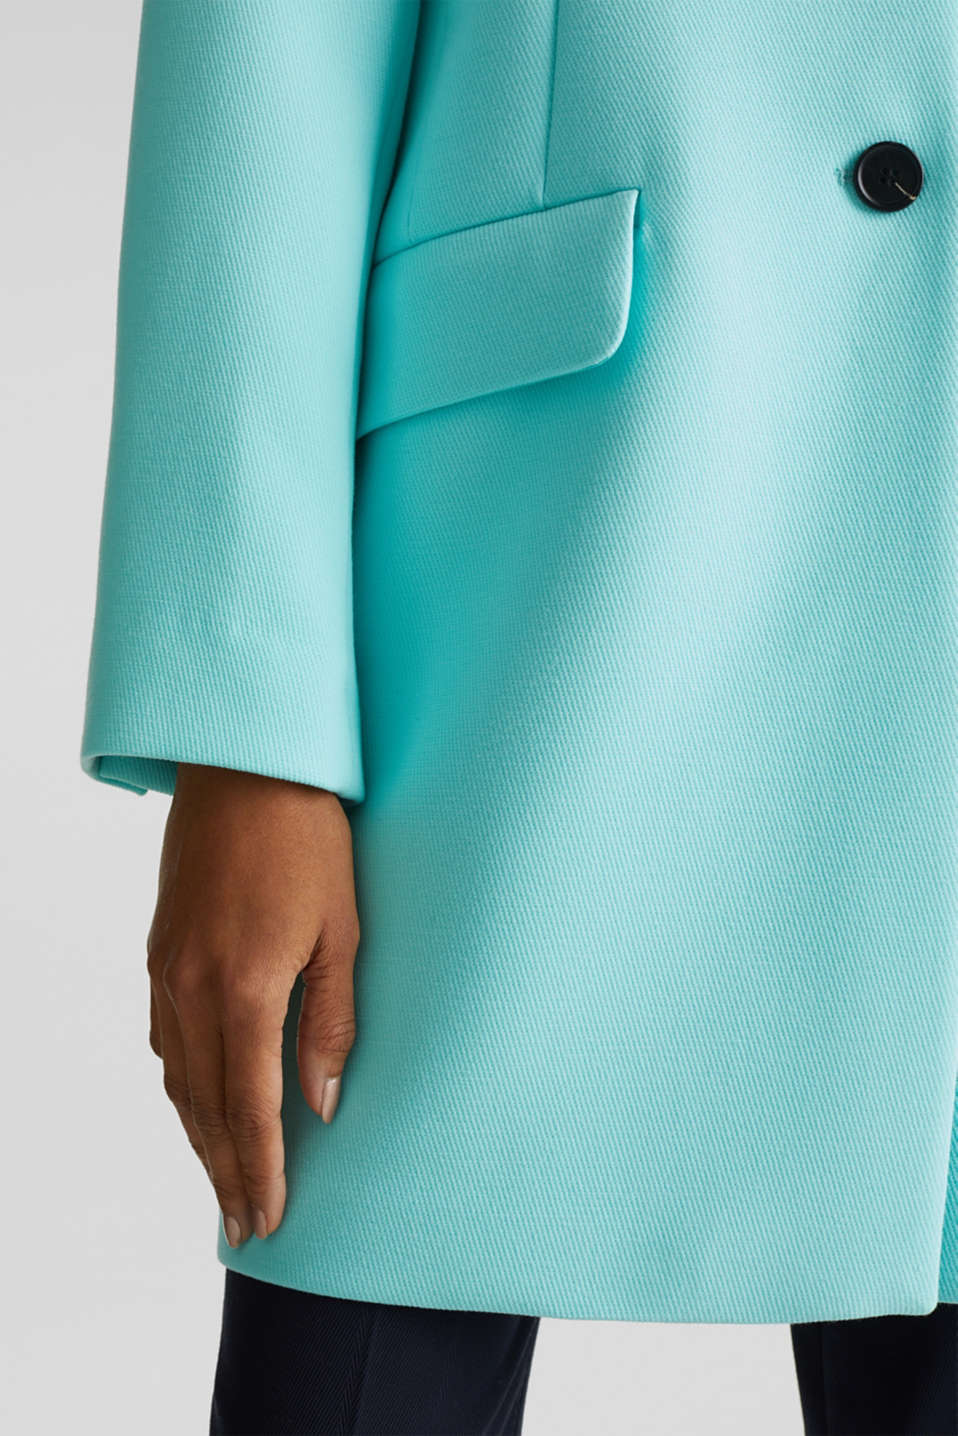 Blazer coat with a fine texture, LIGHT TURQUOISE, detail image number 5